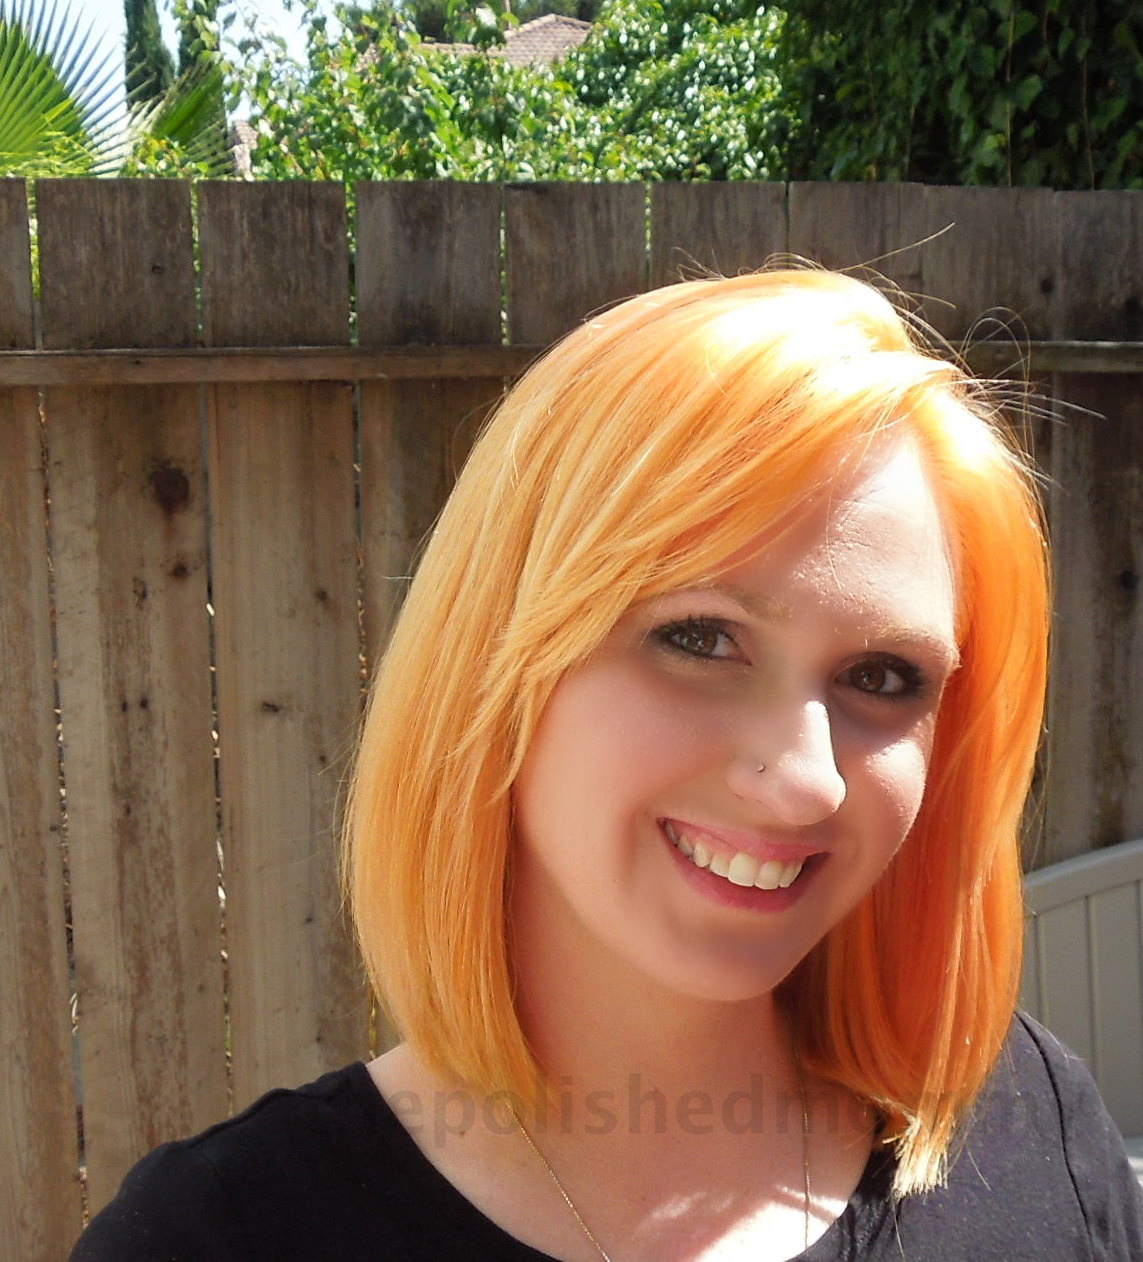 Wella t18 toner on orange hair www galleryhip com the hippest pics - Hair The Polished Mommy